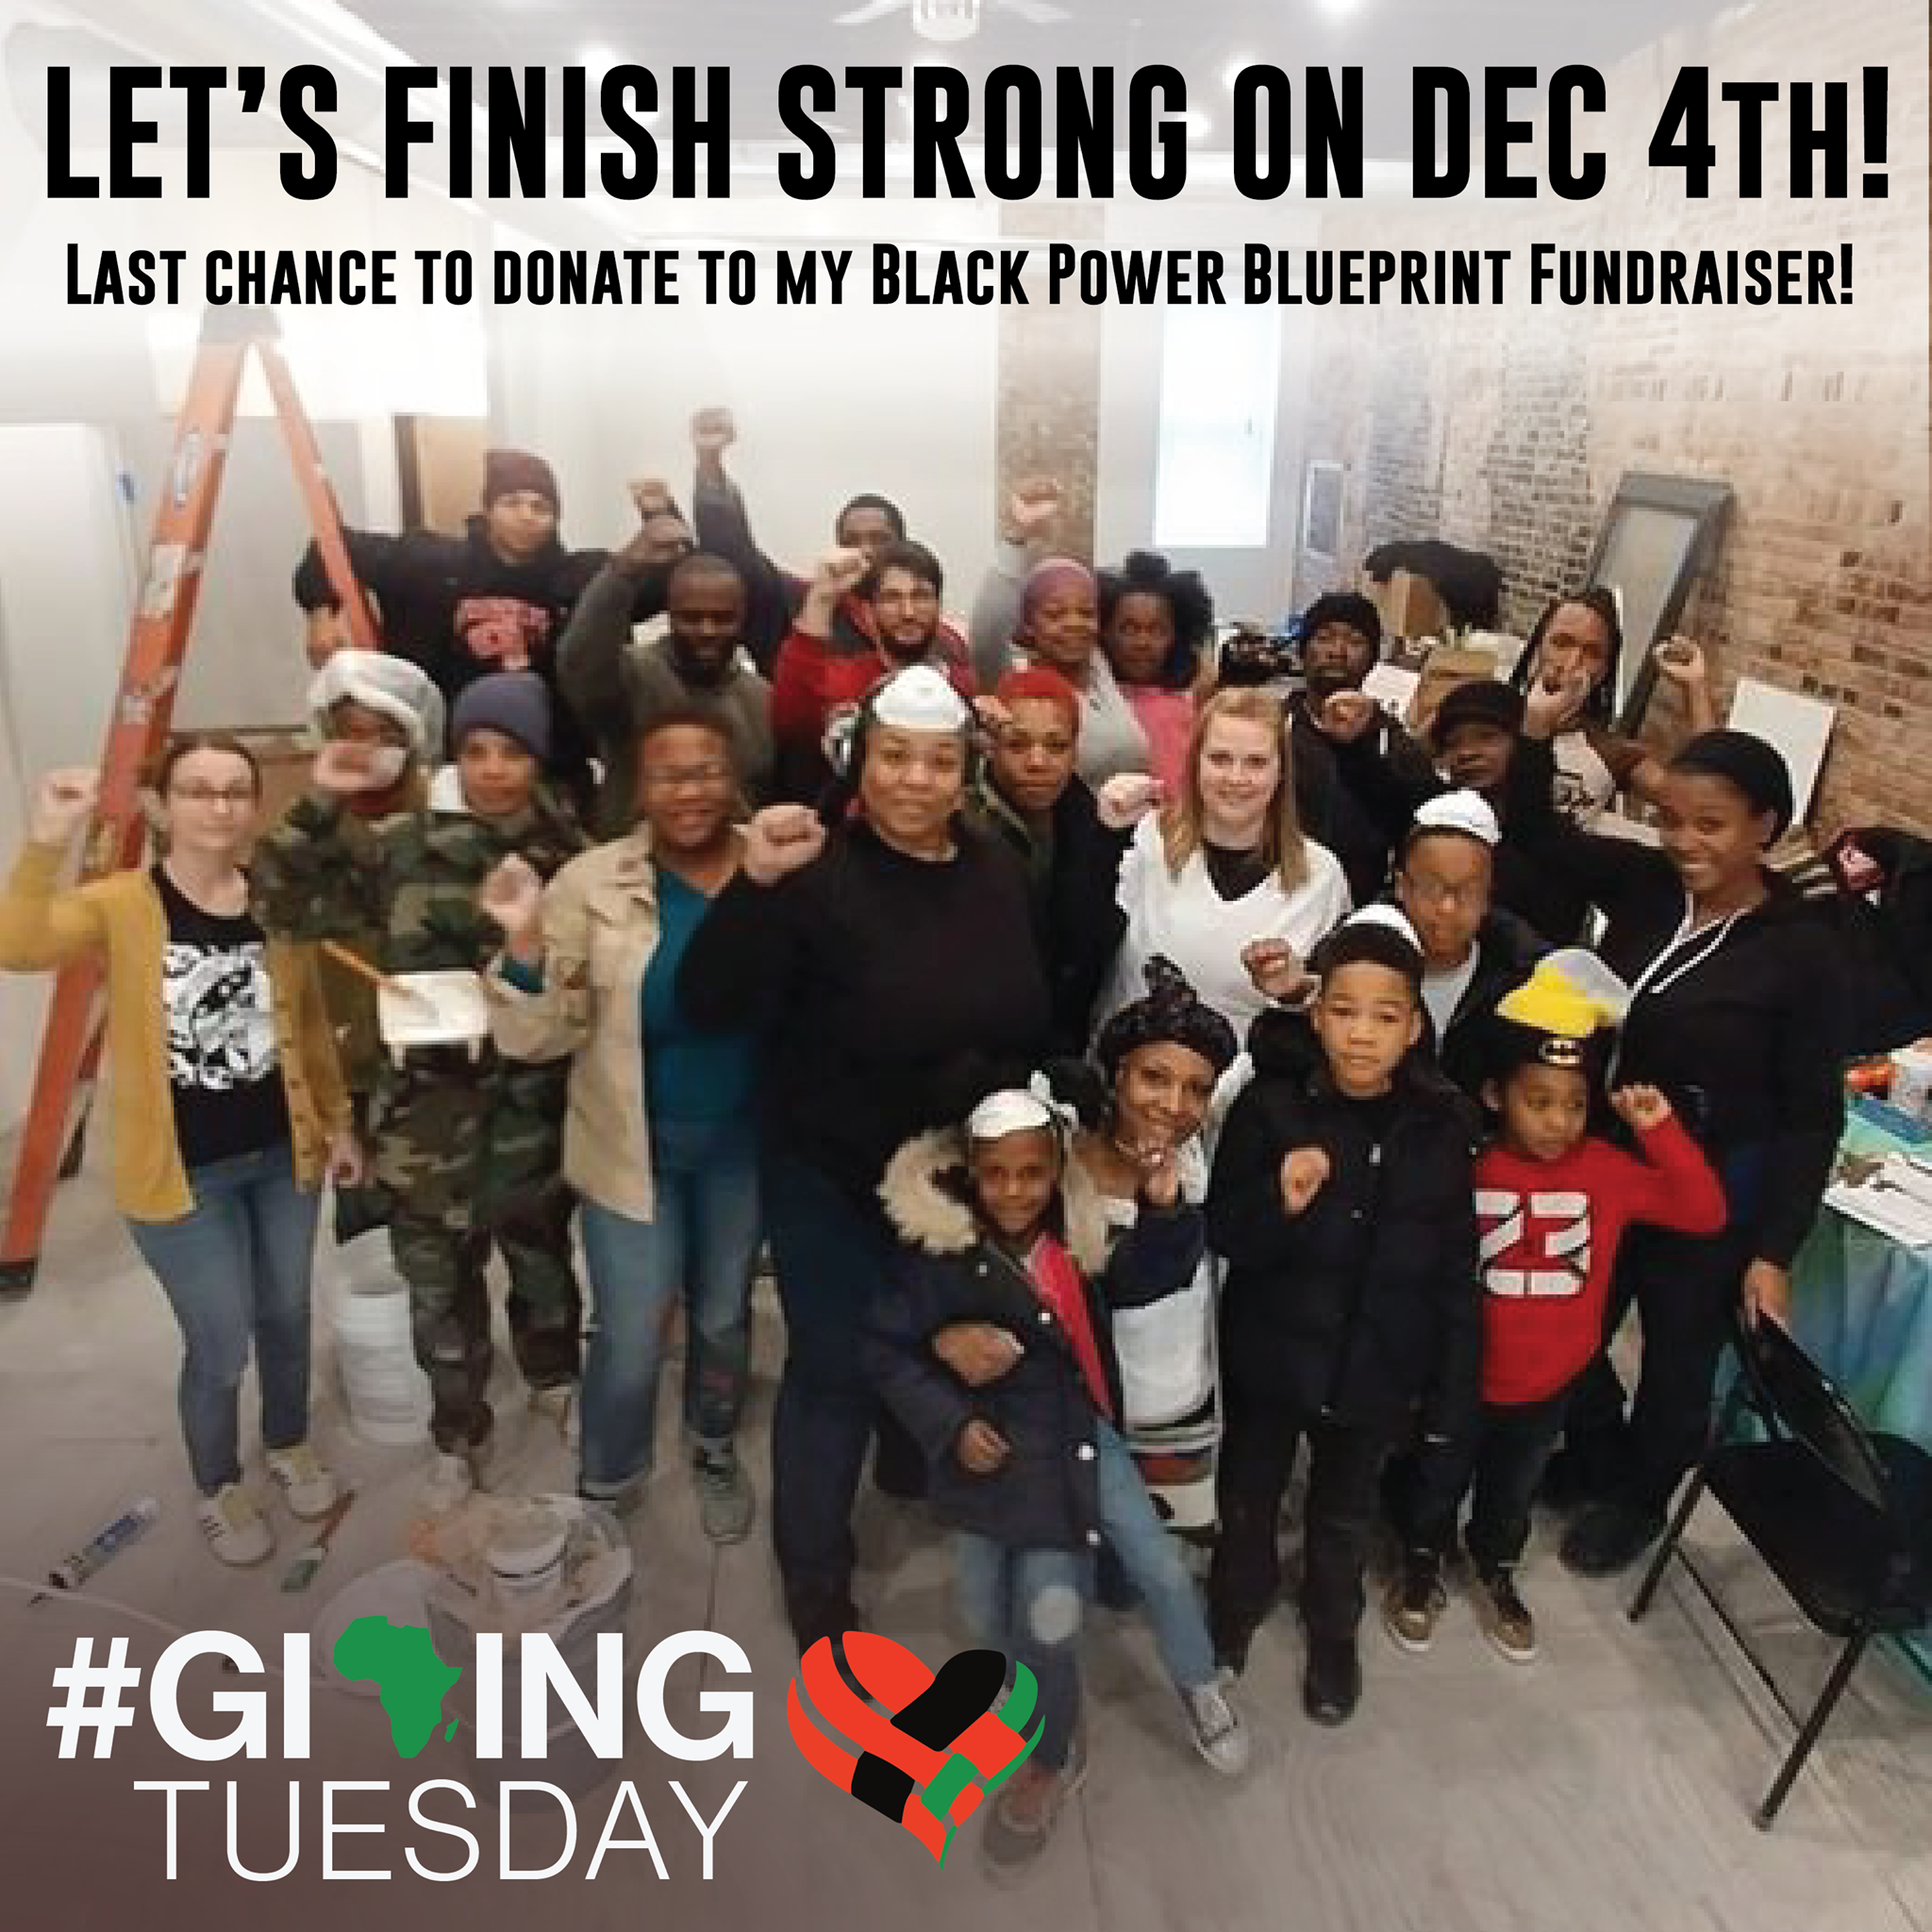 Let's finish strong on December 4 #GivingTuesday